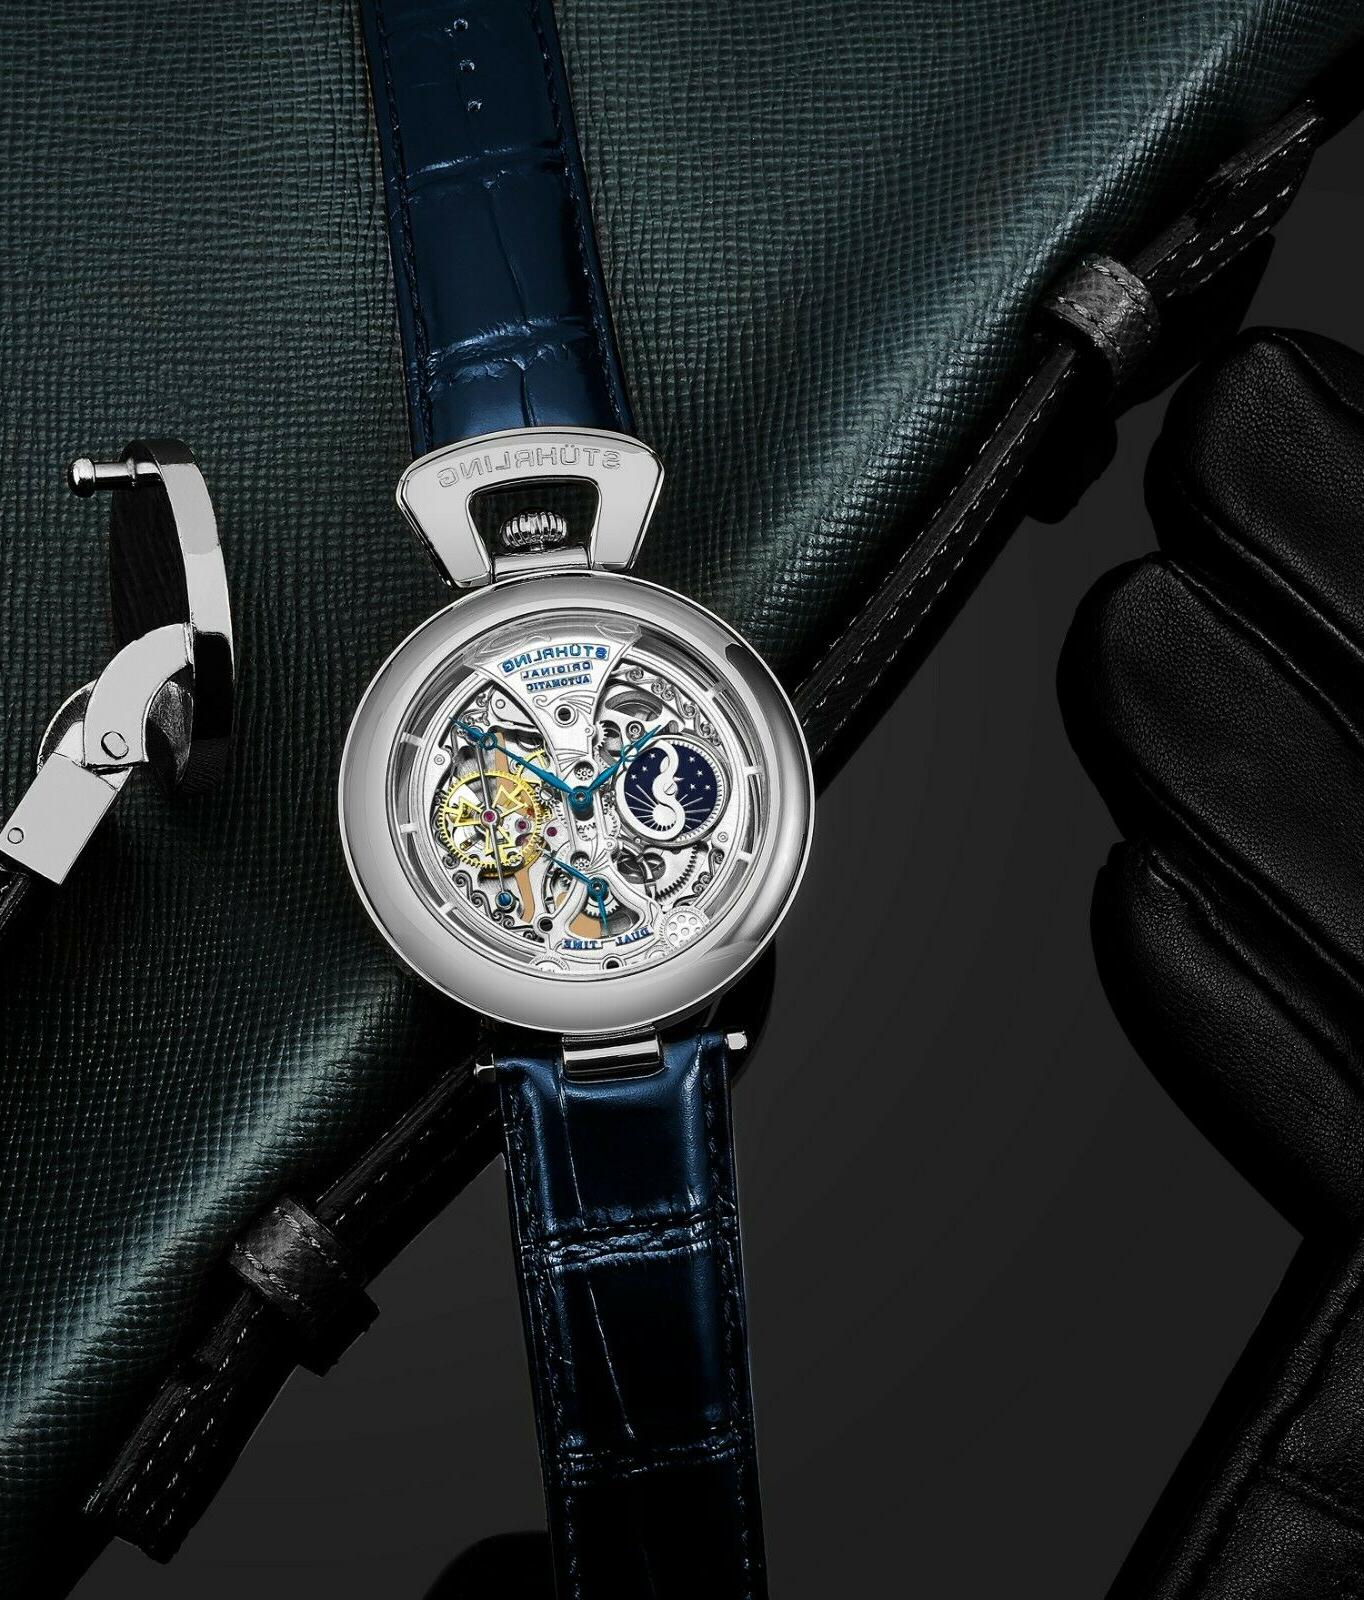 Stuhrling Emperor's Automatic Dual Time